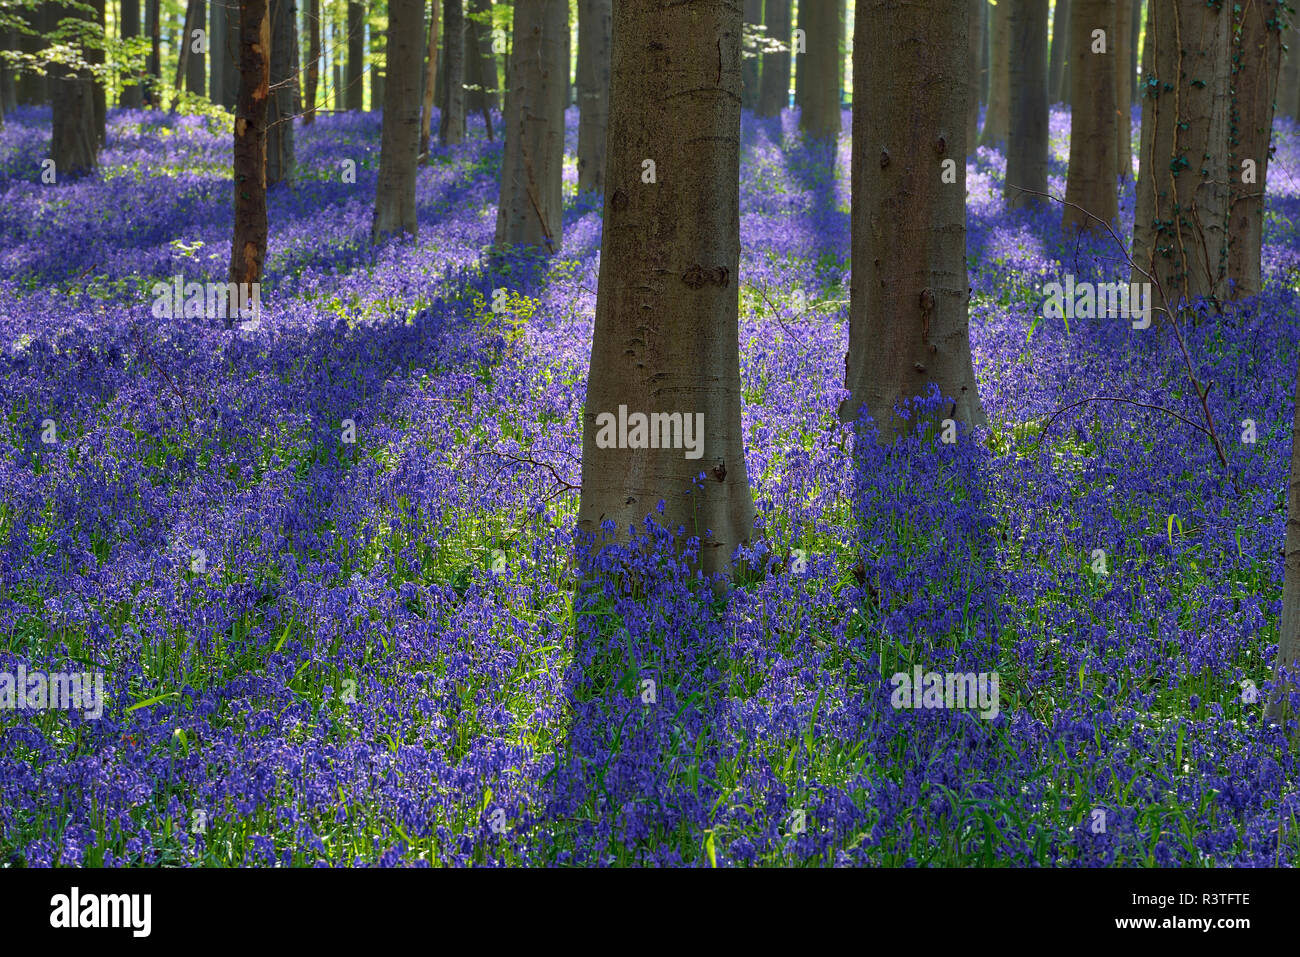 belgium, Flemish Brabant, Halle, Hallerbos, Bluebell flowers, Hyacinthoides non-scripta, beech forest in early spring Stock Photo